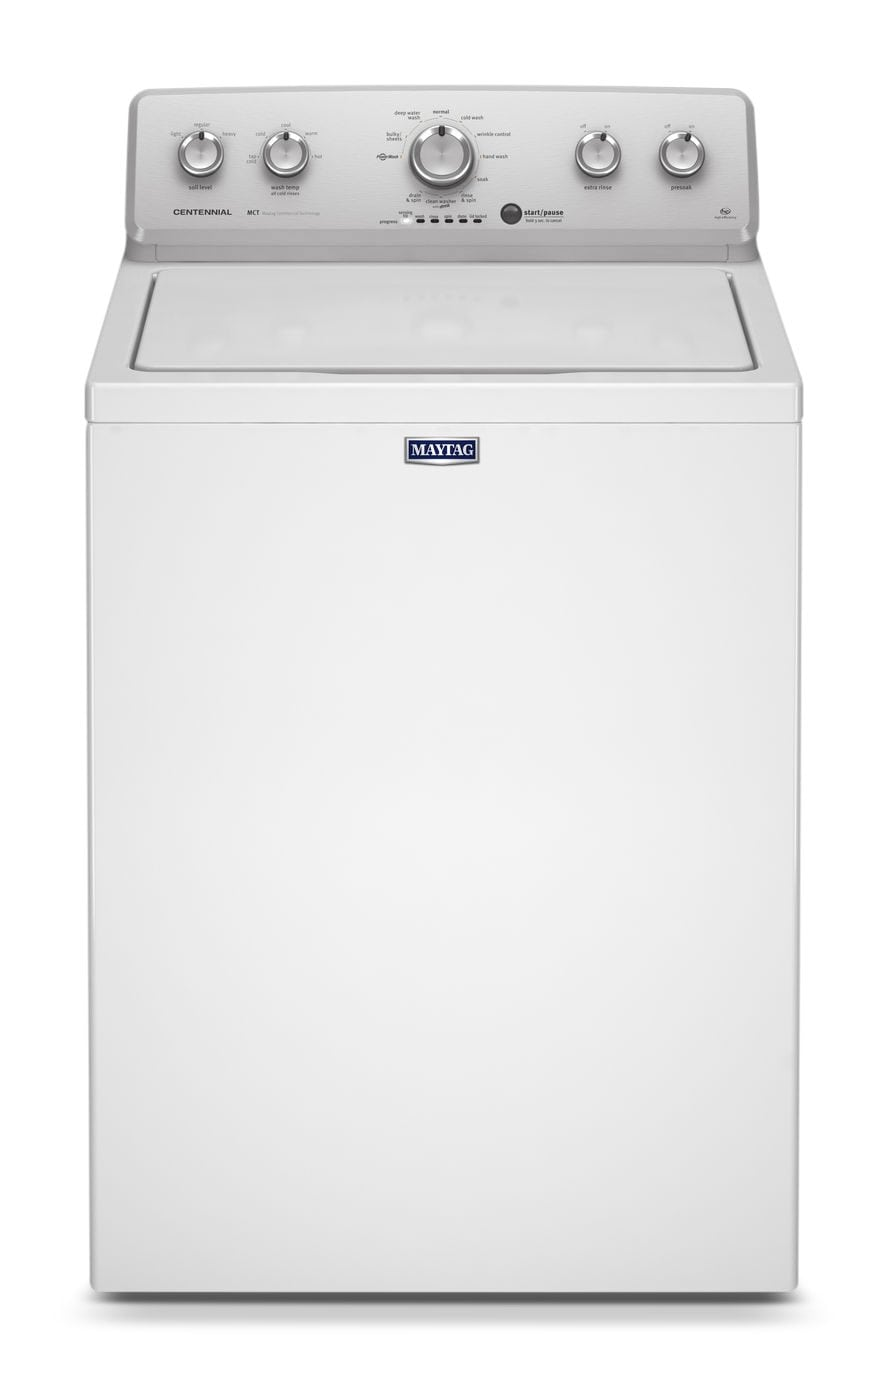 Washers and Dryers - Maytag White Top-Load Washer (4.2 Cu. Ft.) - MVWC415EW